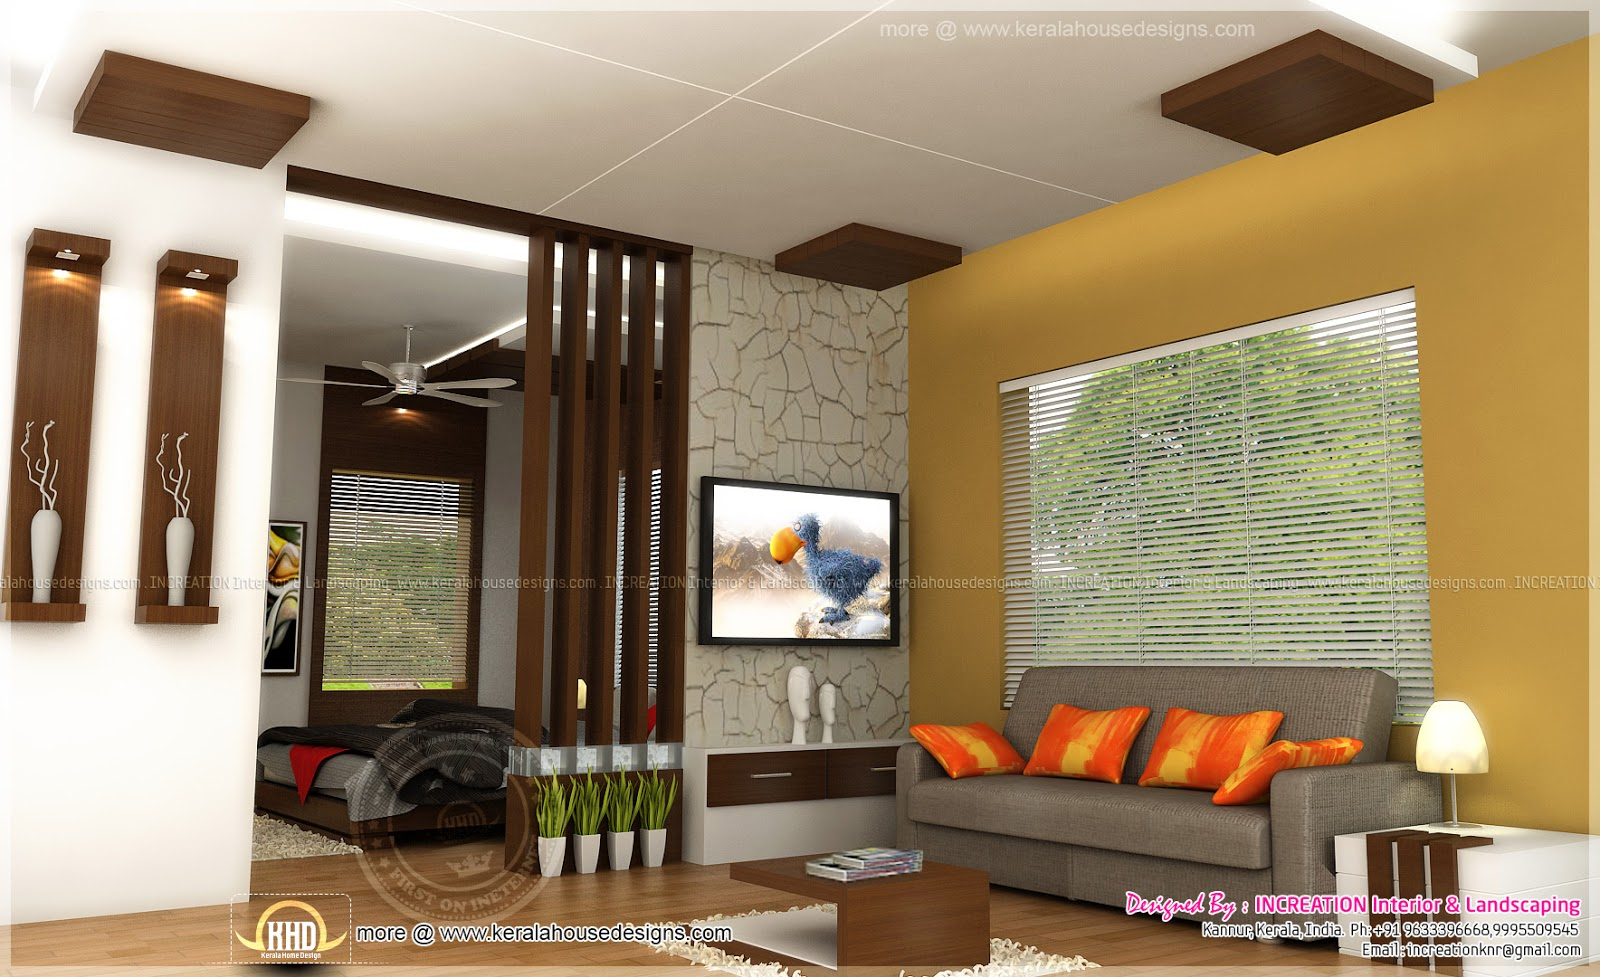 Interior designs from kannur kerala home kerala plans for Living room interior design ideas india